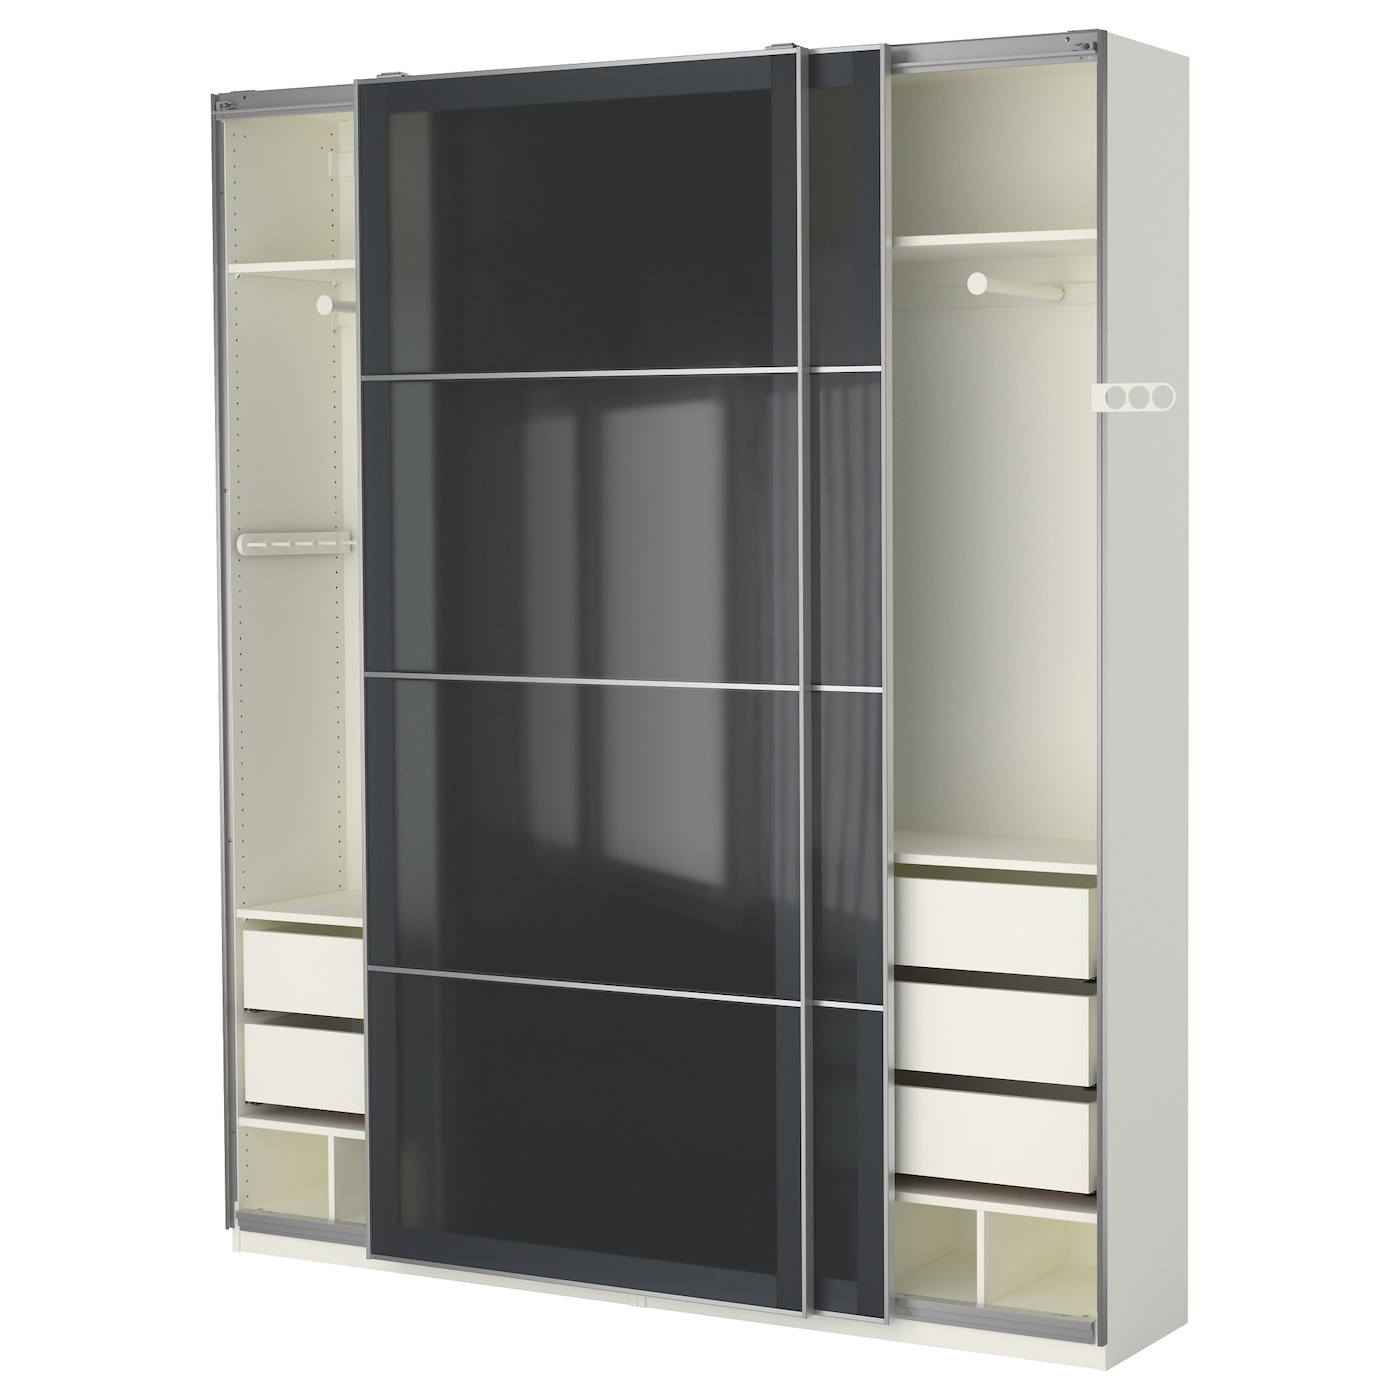 pax wardrobe white uggdal grey glass 200x44x236 cm ikea. Black Bedroom Furniture Sets. Home Design Ideas